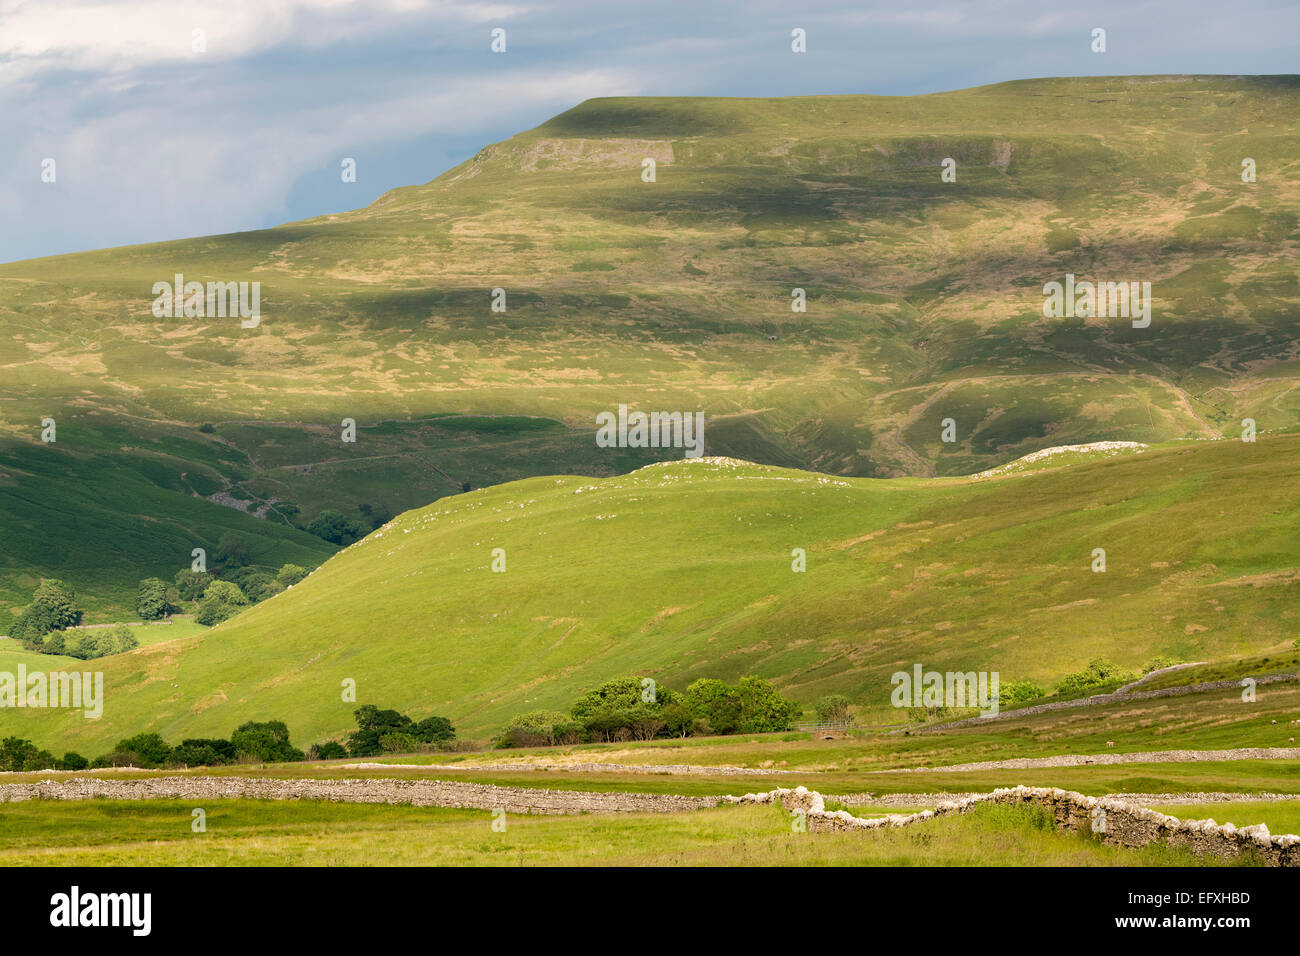 Upland countryside in the Upper Eden near Kirkby Stephen, Cumbria, UK, showing Wharton Fell and Mallerstang Edge. Stock Photo